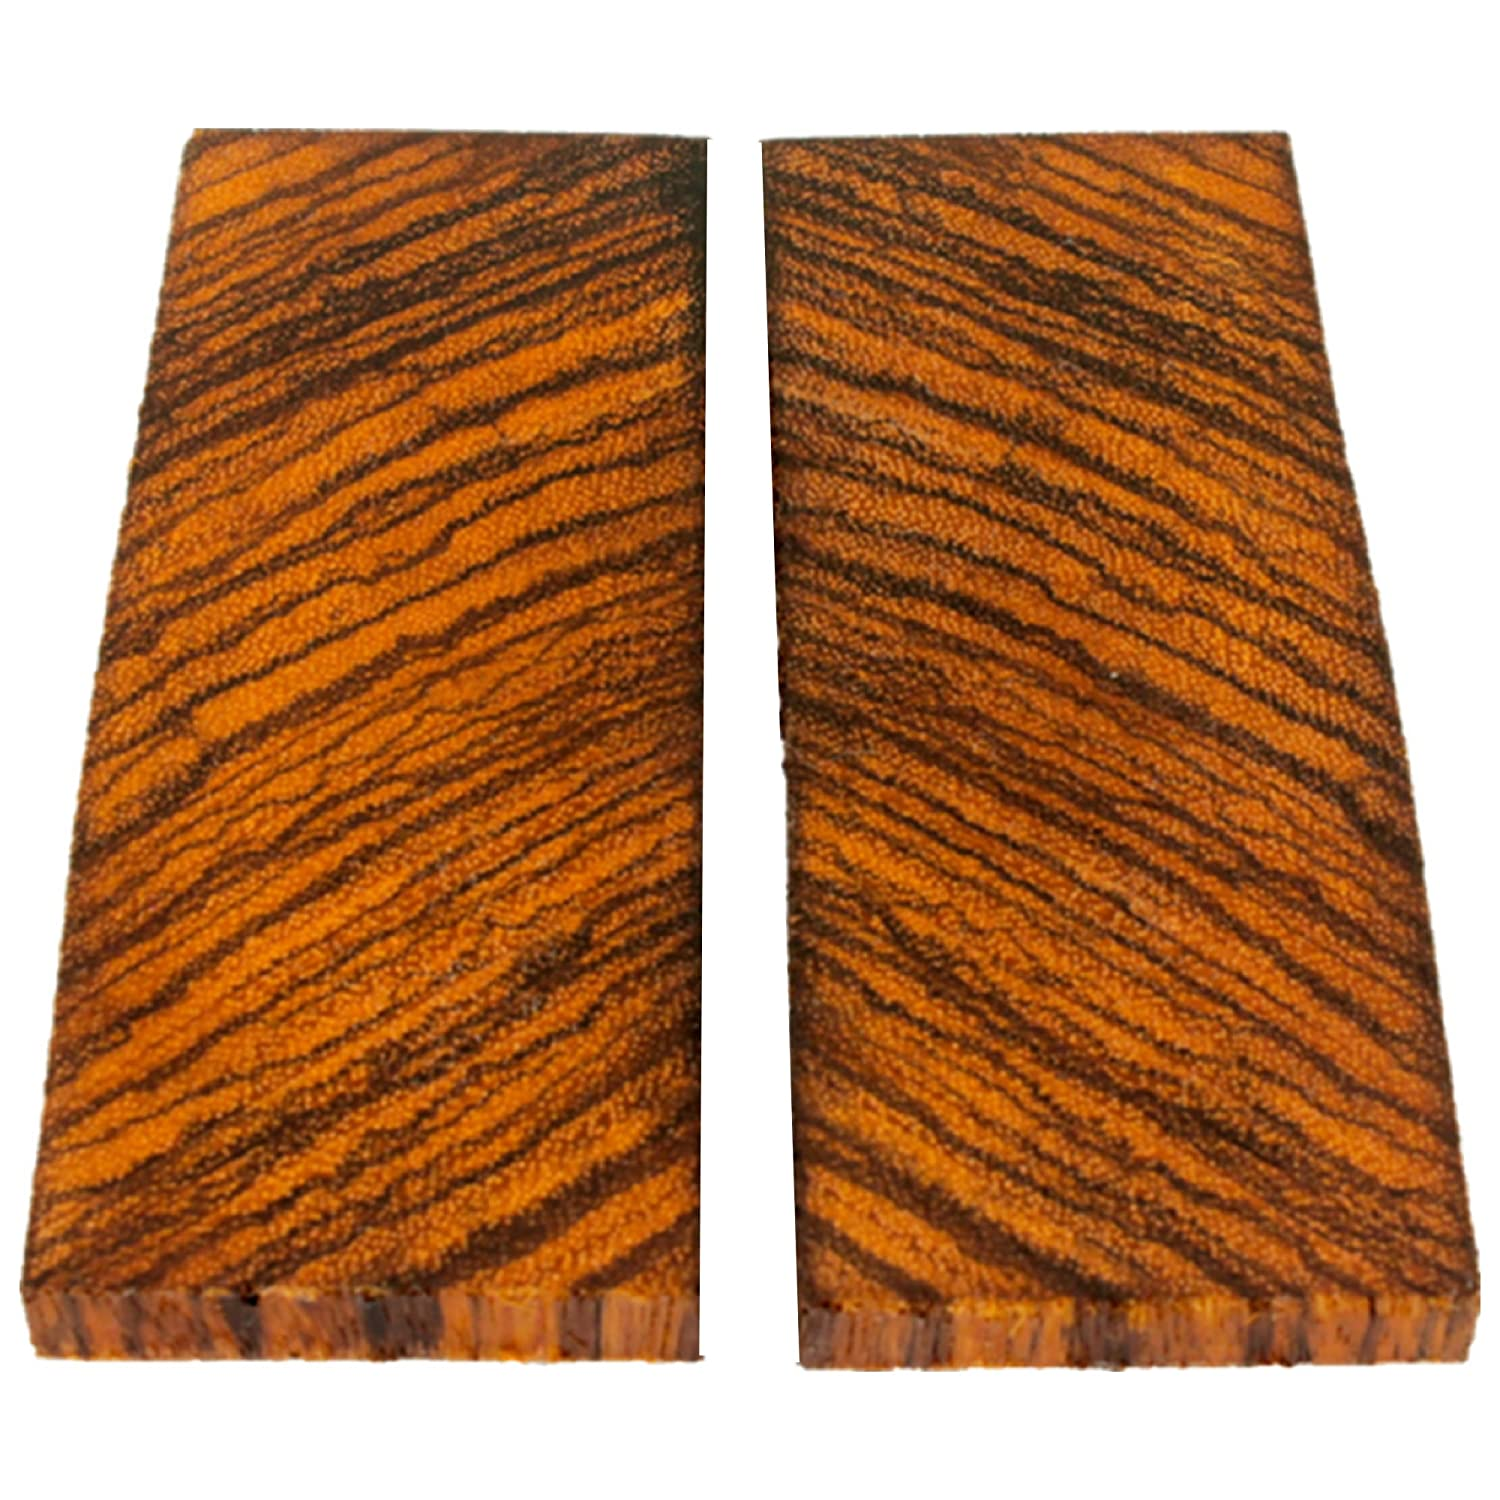 Bookmatched Zebrawood Knifes Scales, Handle Blank Exotic Knife Scales Wood